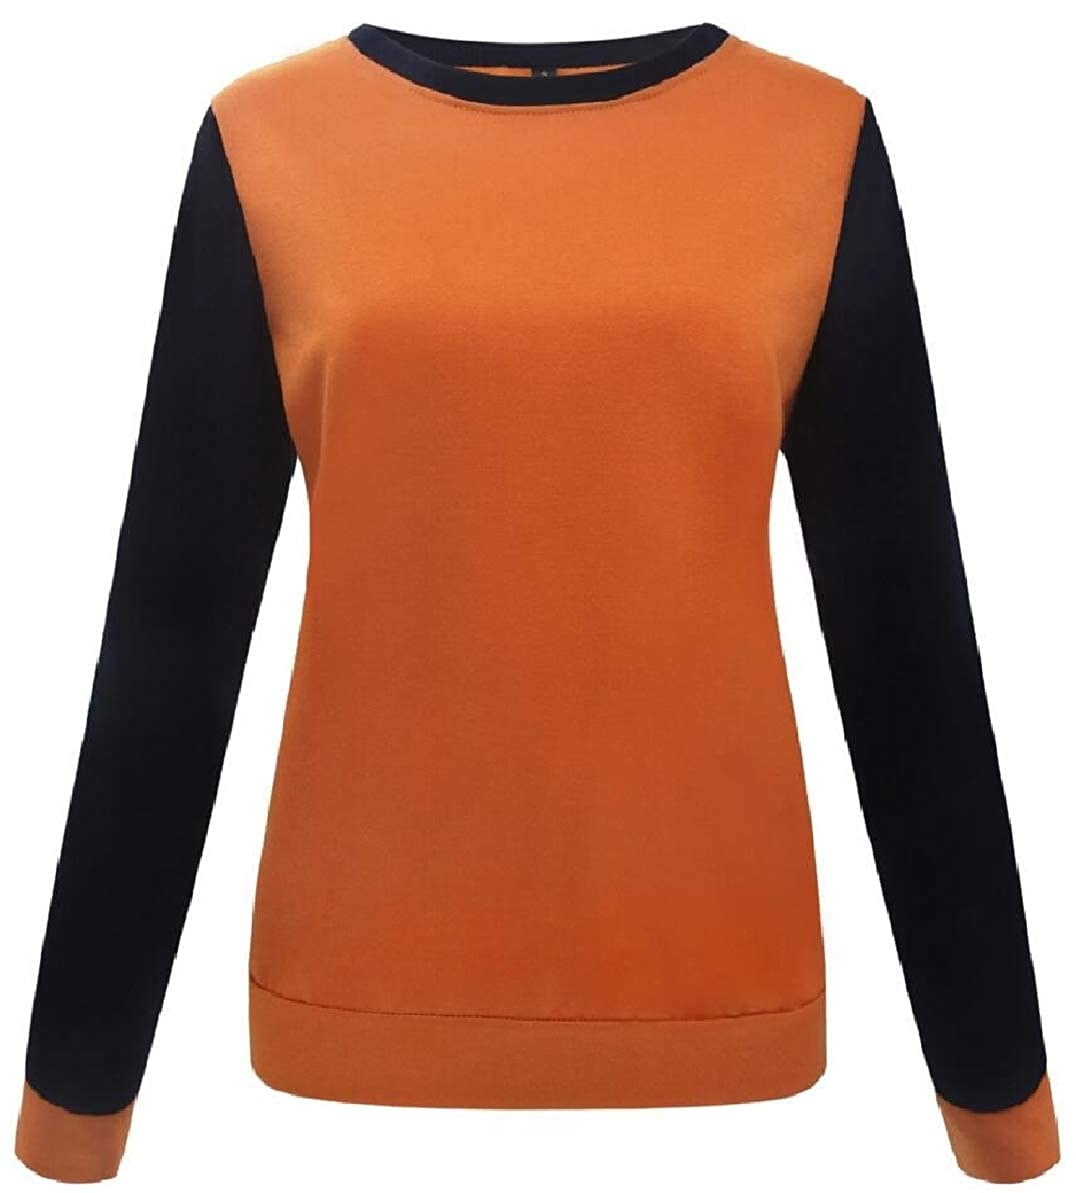 FLCH+YIGE Womens Color Block Tops Casual Crewneck Long Sleeve Pullover Sweatshirts